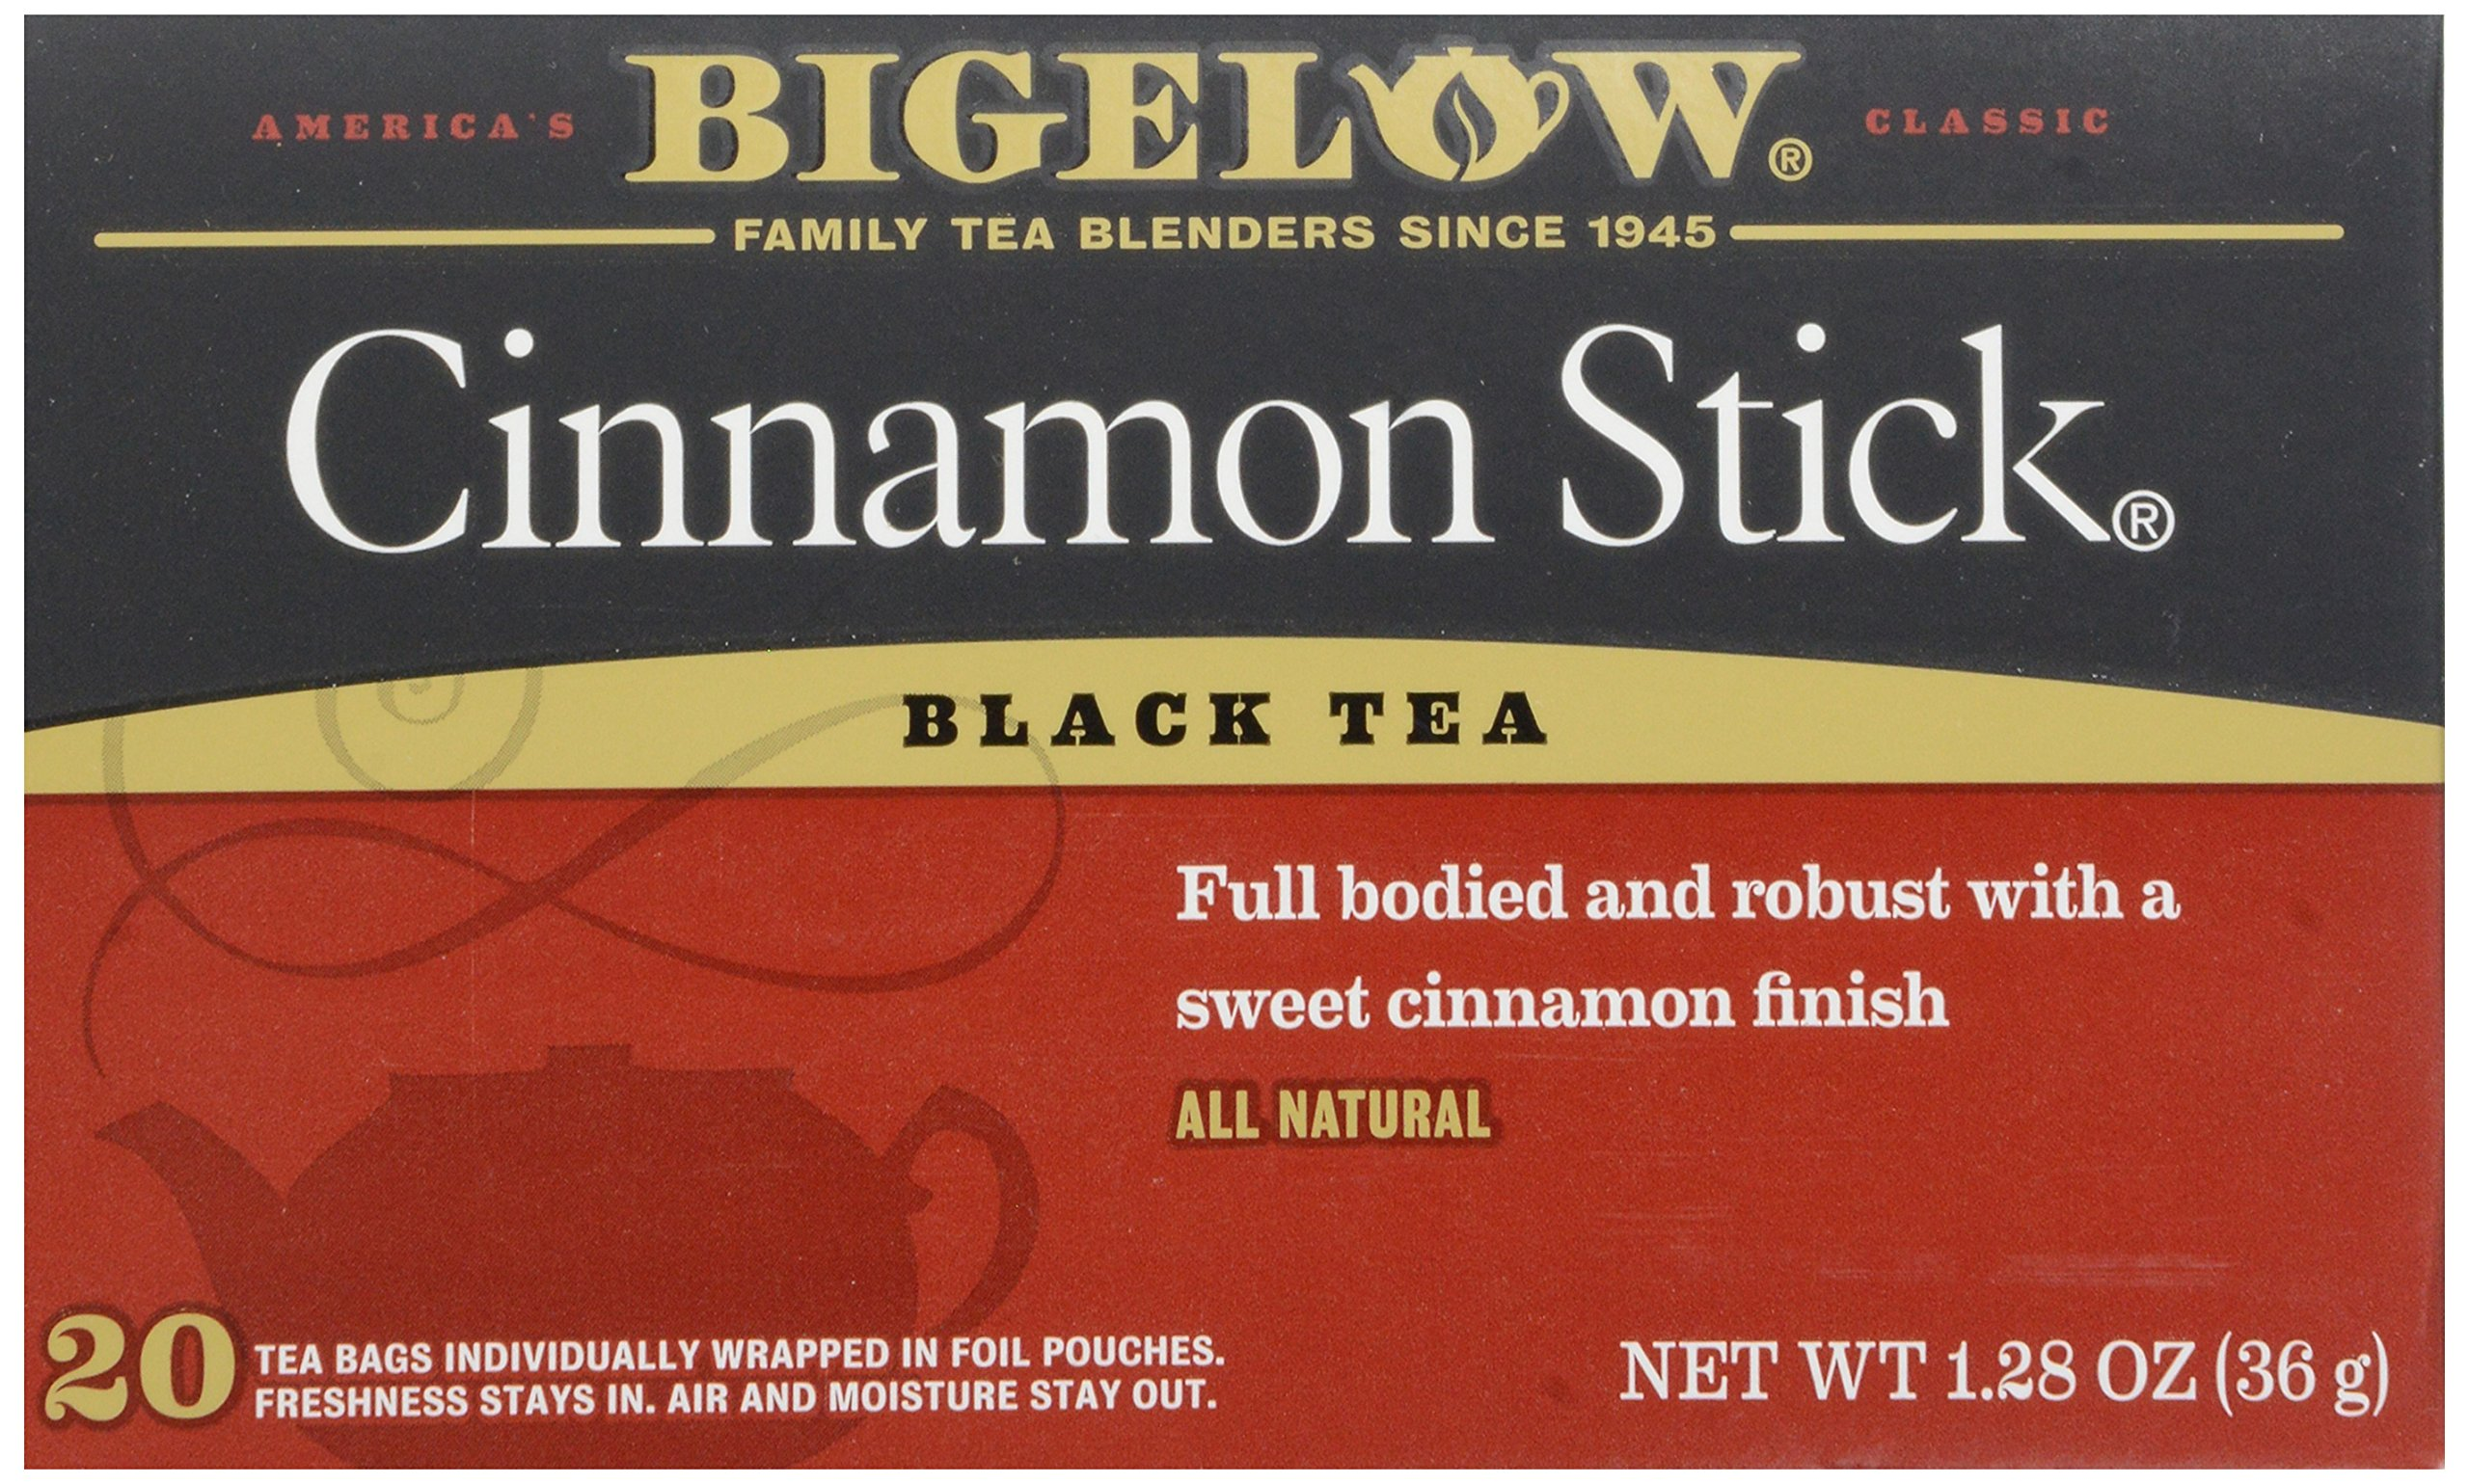 Bigelow Tea - Black Tea Cinnamon Stick - 20 Tea Bags